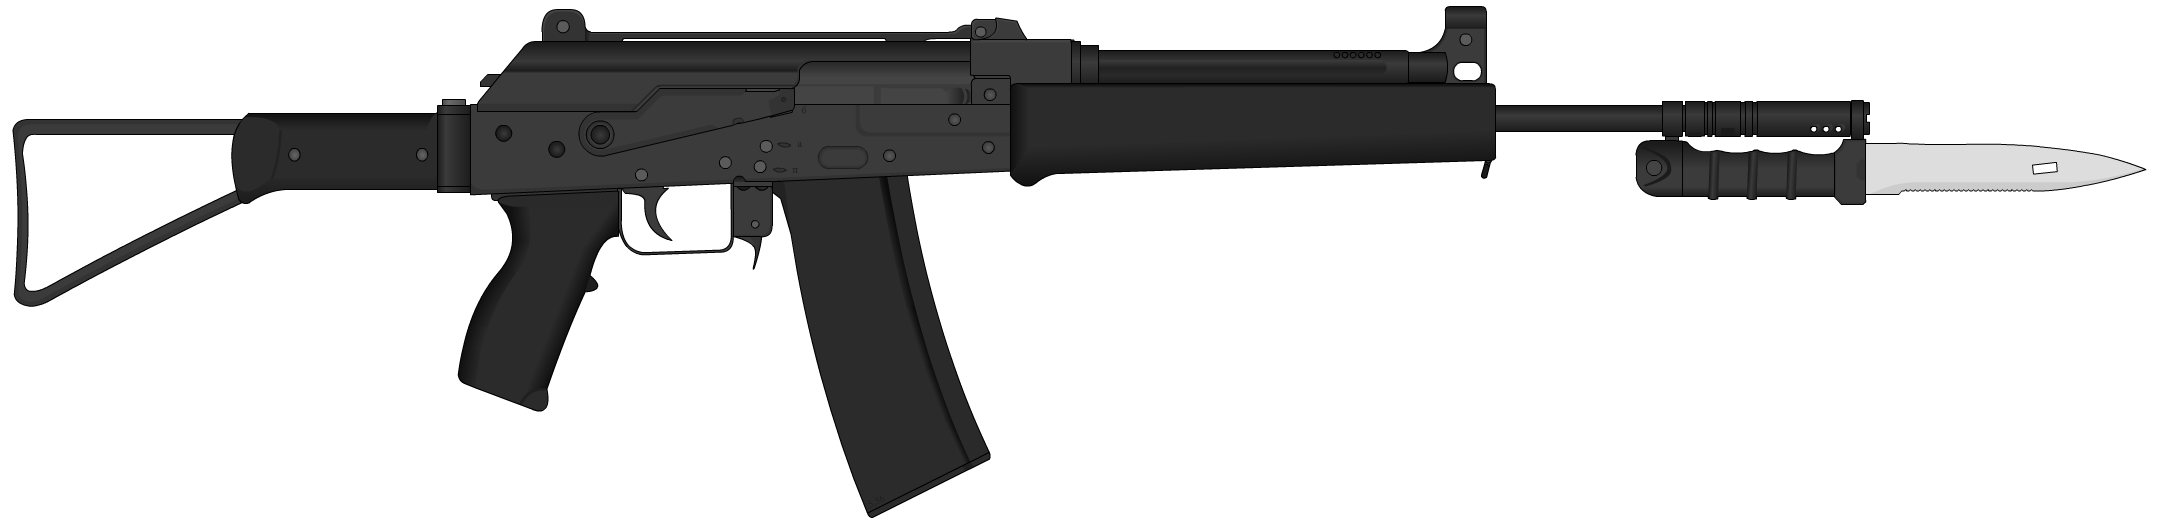 AK 5.56 Md. 97 by Semi-II